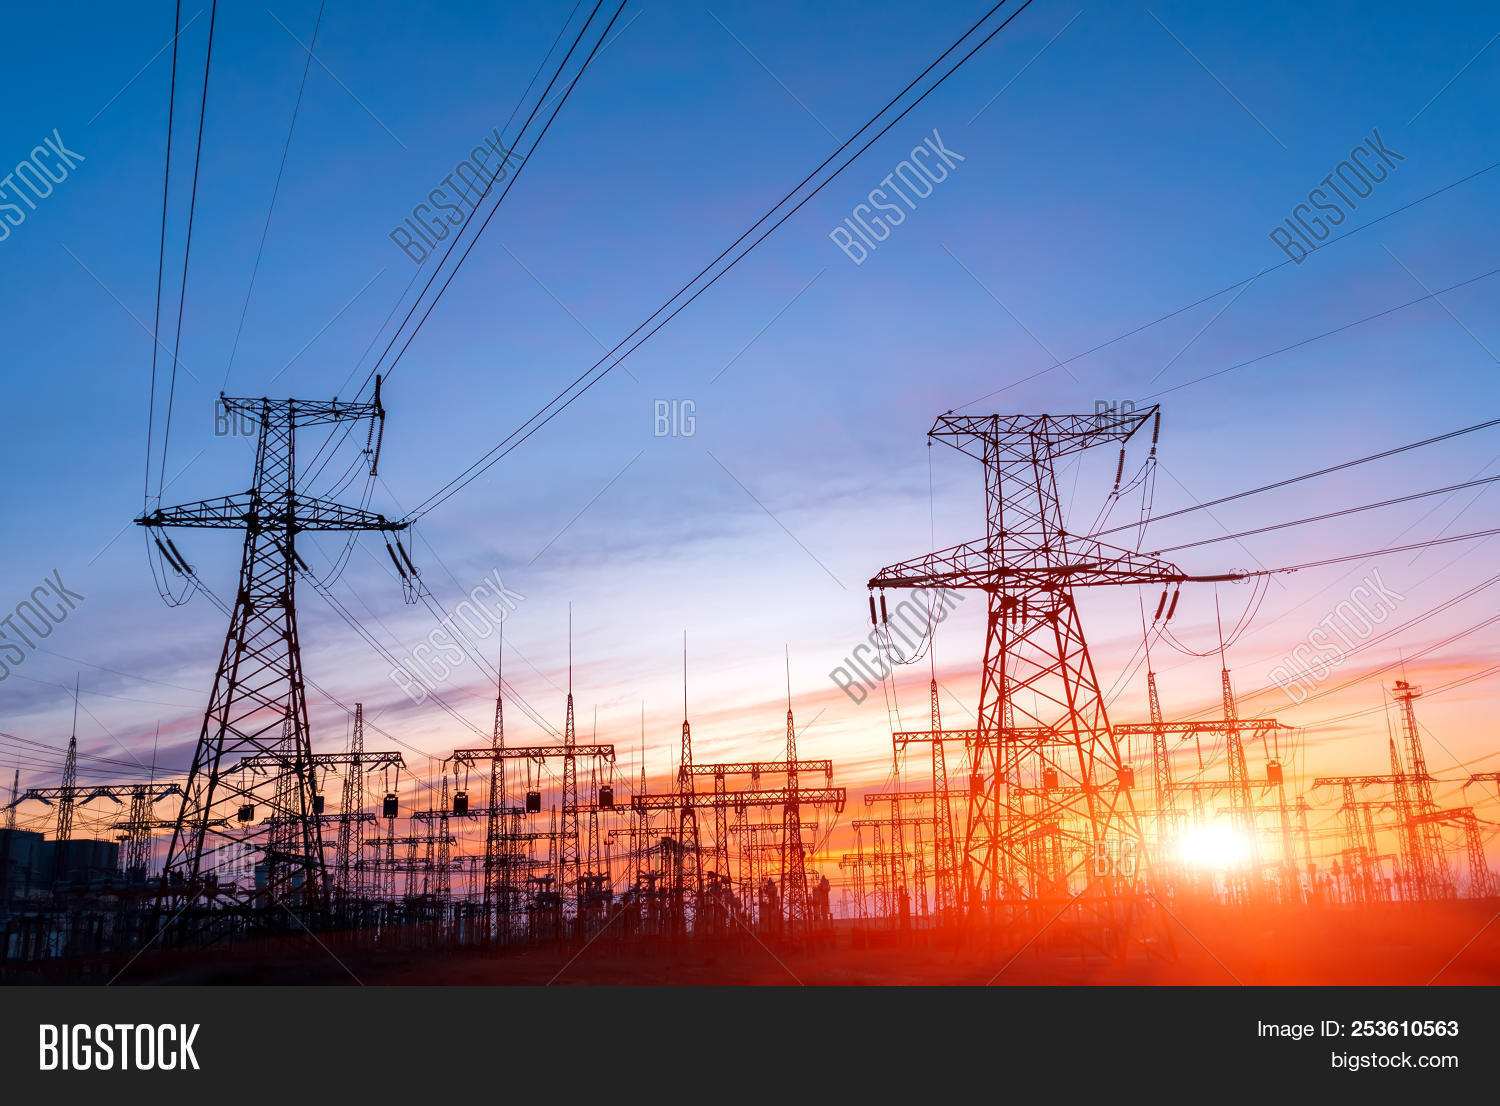 blue,cable,distribution,electric,electrical,electricity,energy,engineering,environment,grid,high,industrial,industry,line,metal,plant,pollution,power,pylon,sky,station,steel,structure,sunset,supply,technology,tower,transmission,voltage,wire